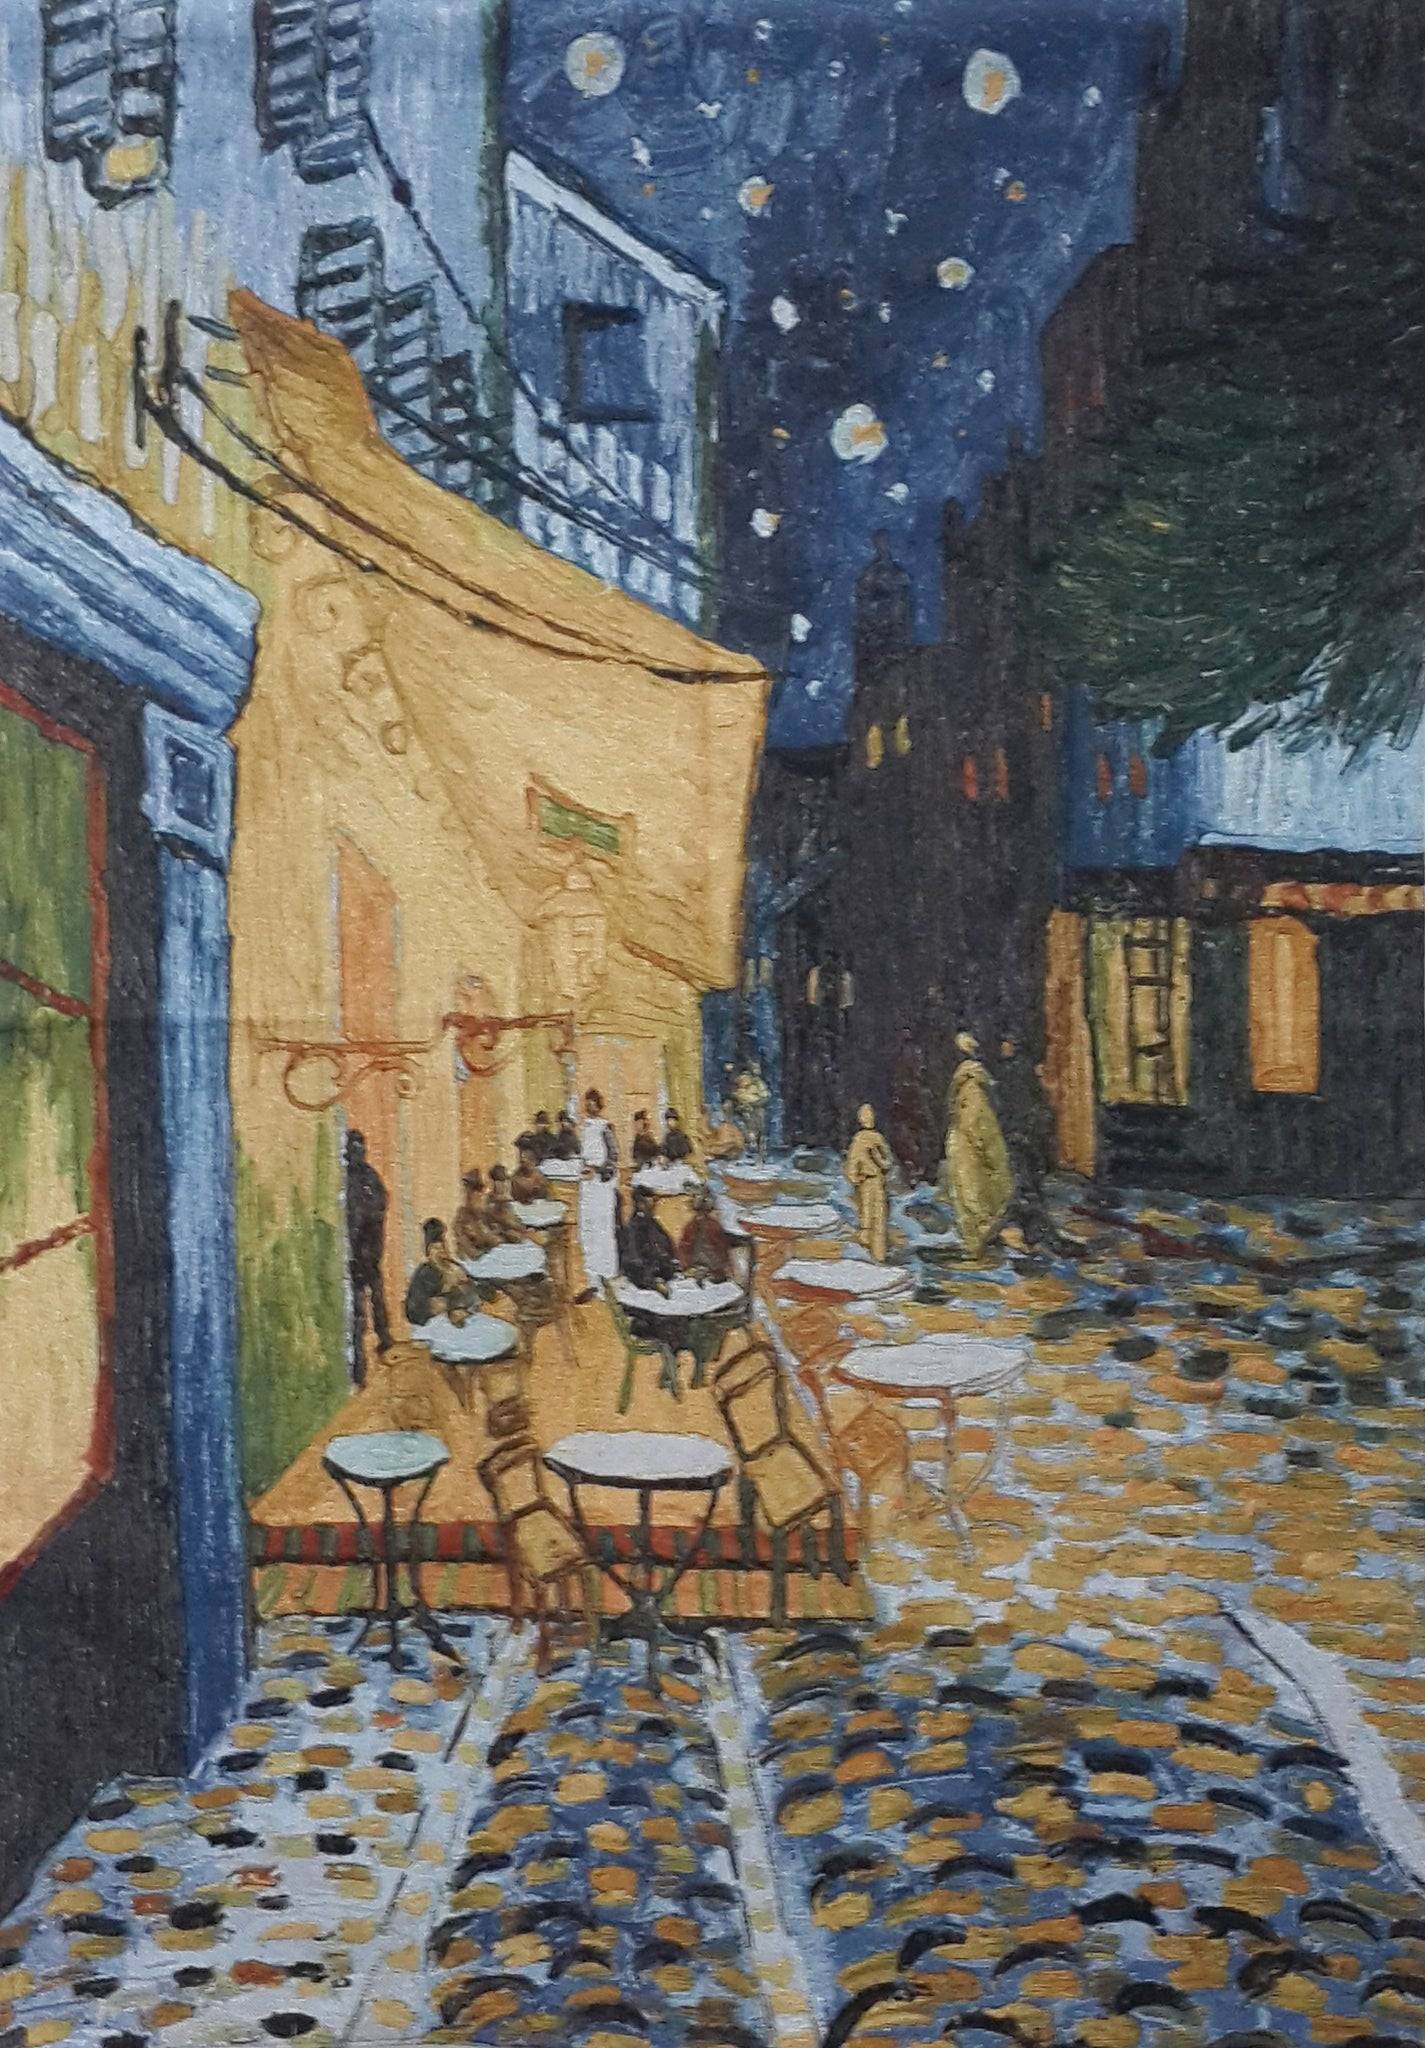 "WH-VG-CT | VINCENT VAN GOGH CAFÉ TERRACE 55 X 39 "" INCH WALL HANGING TAPESTRY ART - www.signareusa.com"